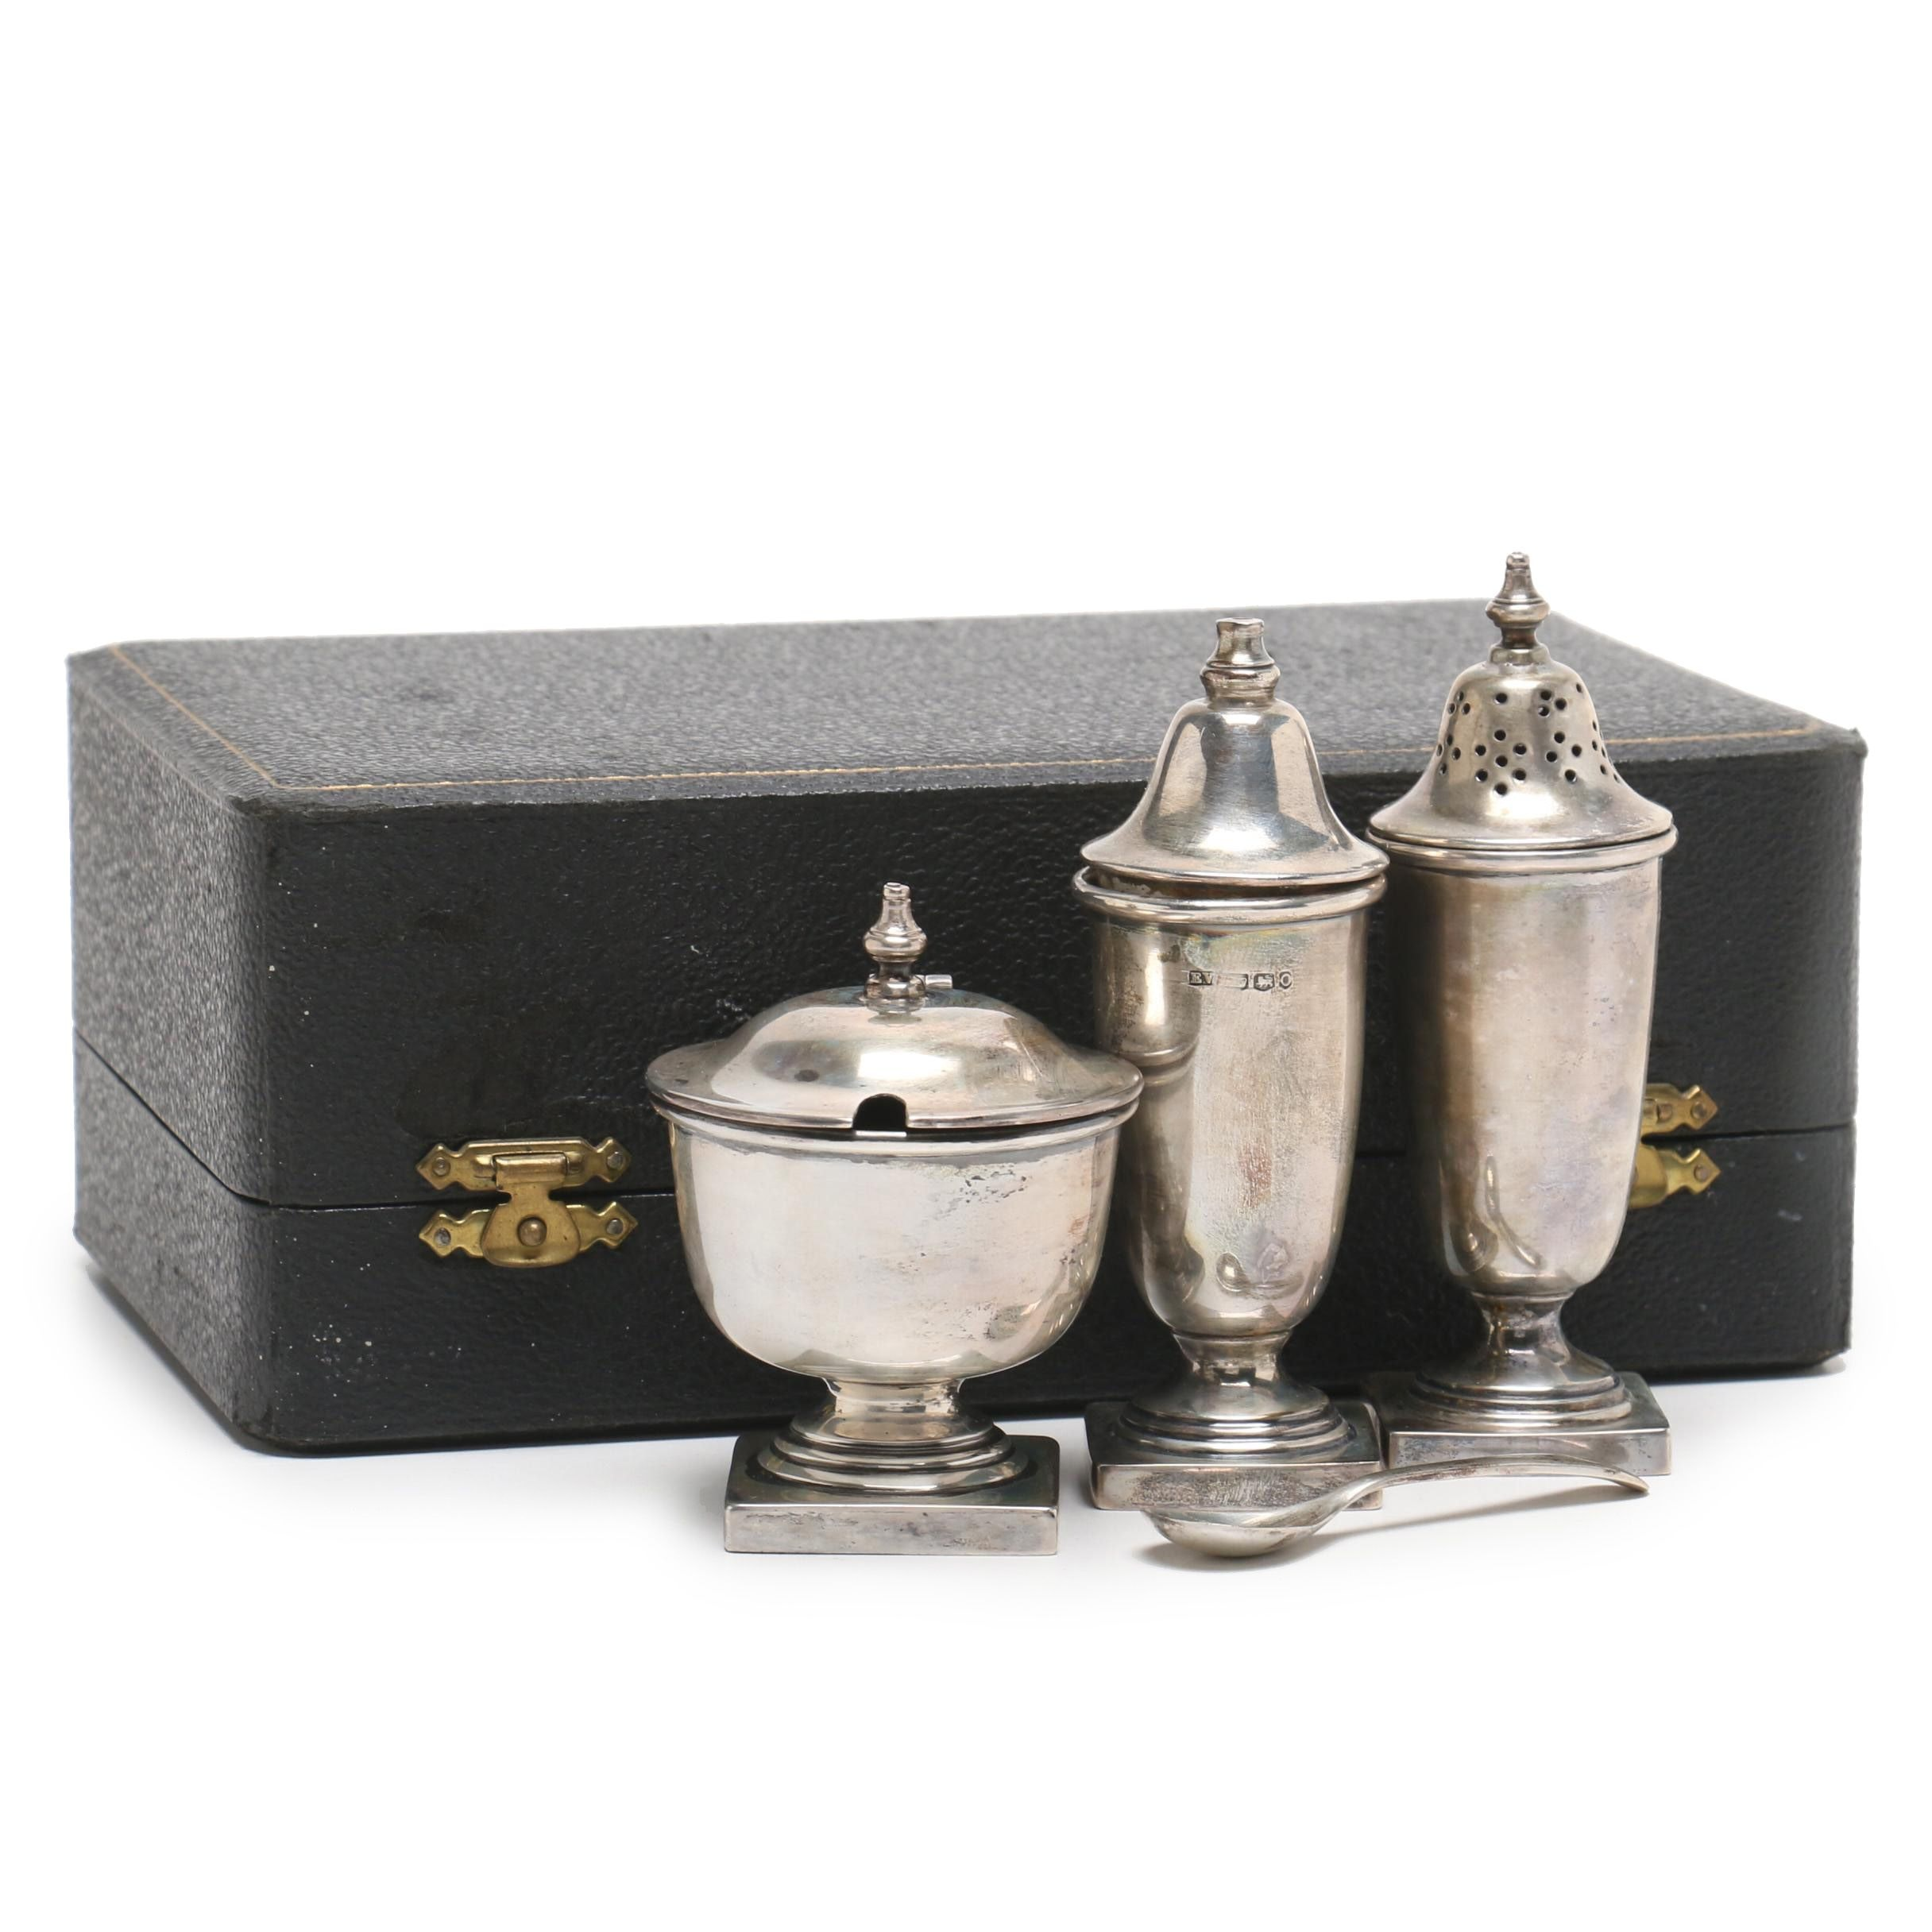 Edward Viner Sterling Silver Salt and Pepper Shakers with Salt Cellar and Spoon